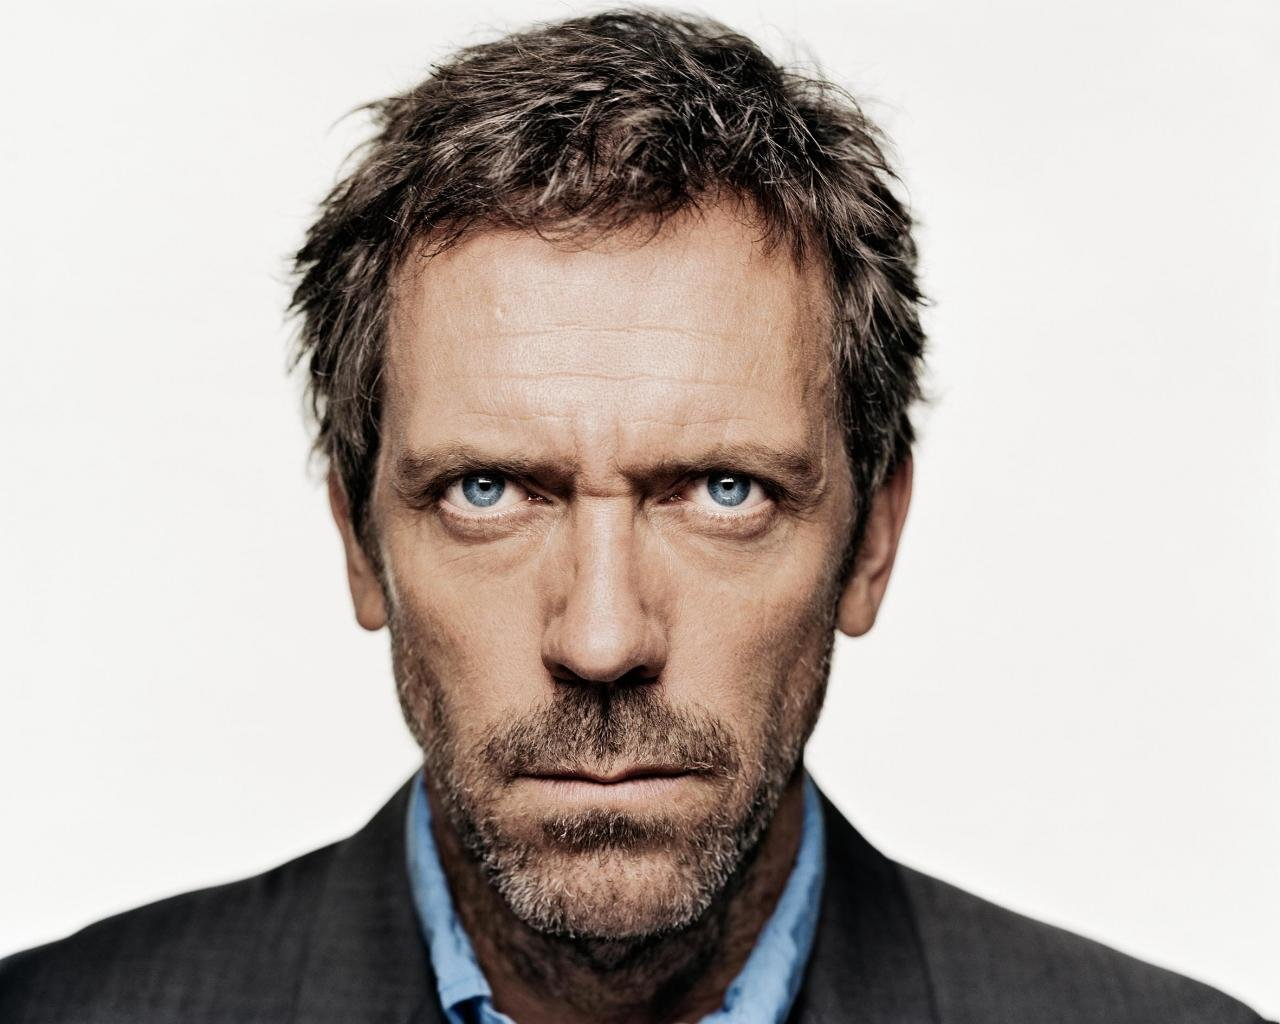 Free download Dr. House background ID:156682 hd 1280x1024 for computer